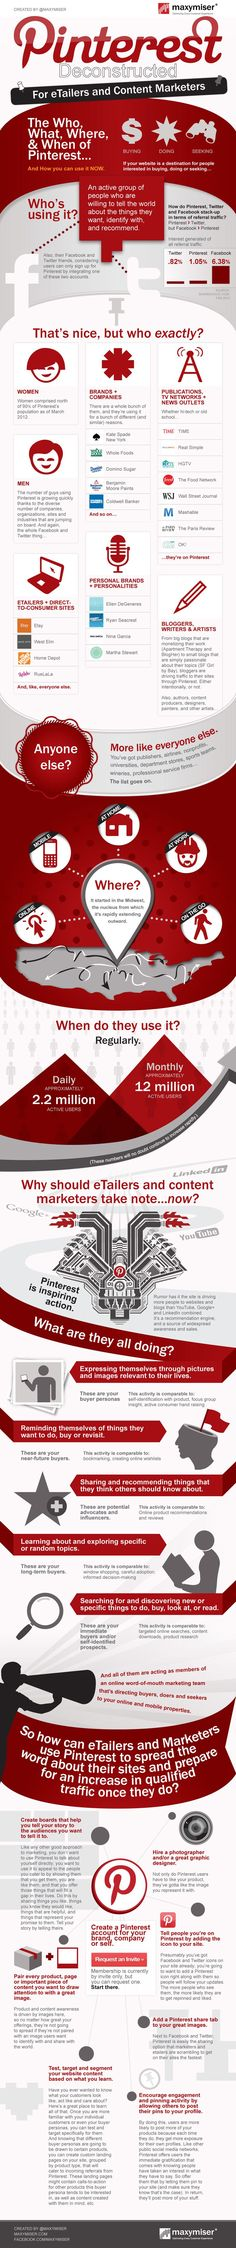 The Who, What, Where & When of Pinterest #Infographic